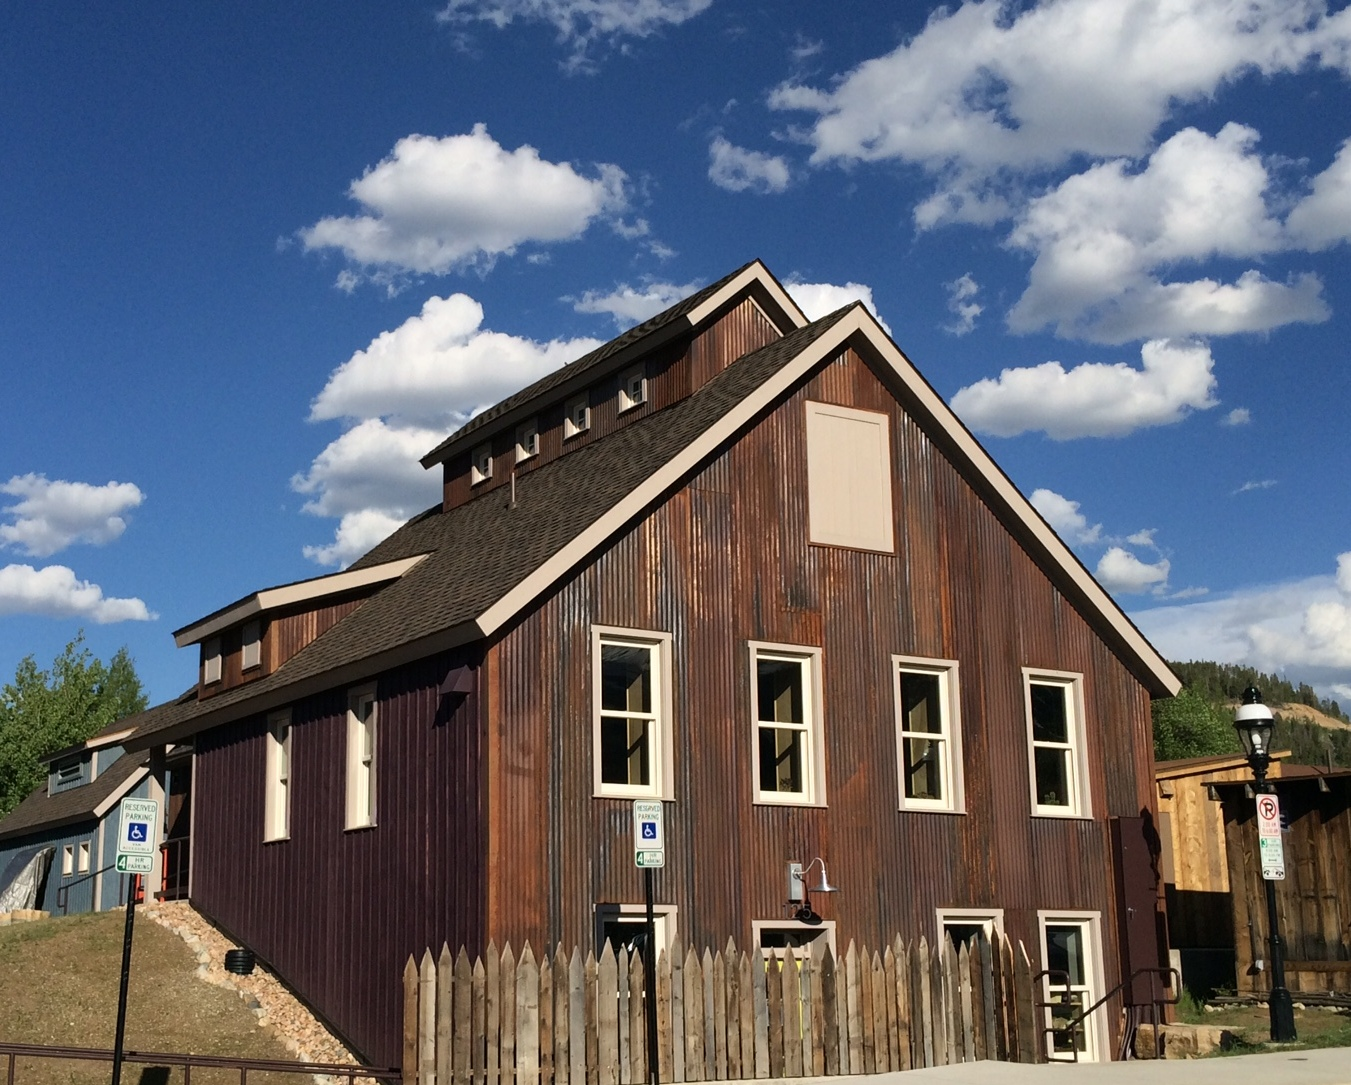 Breckenridge Art District